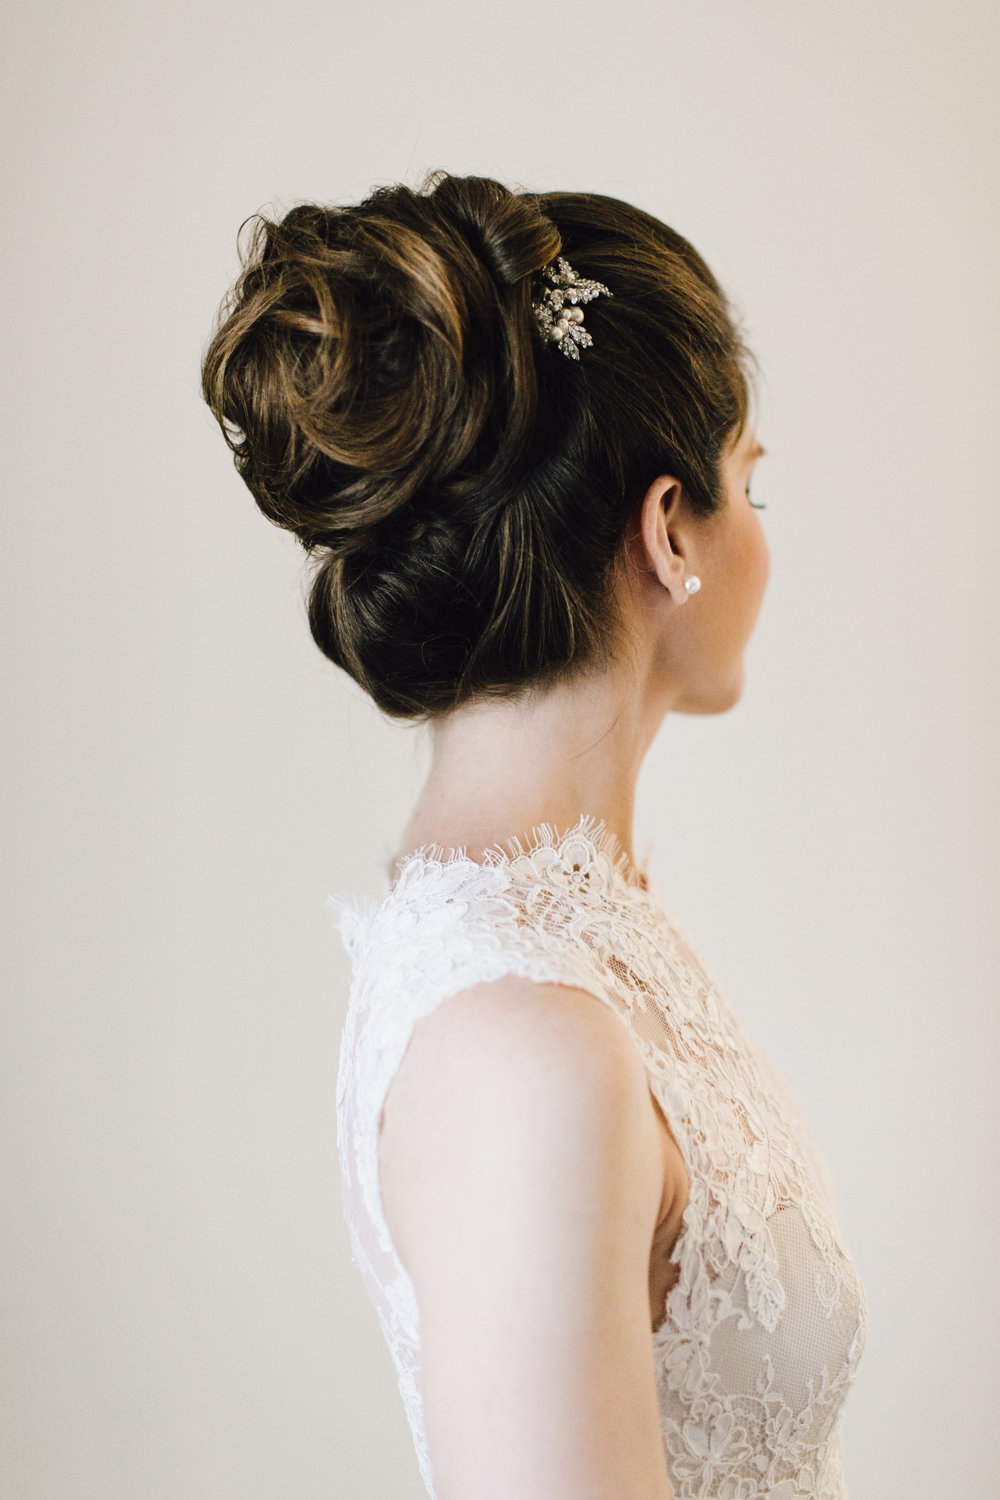 Back of bride's hair by Bridal Hair by Remona - Maria Vicencio Photography Weddings